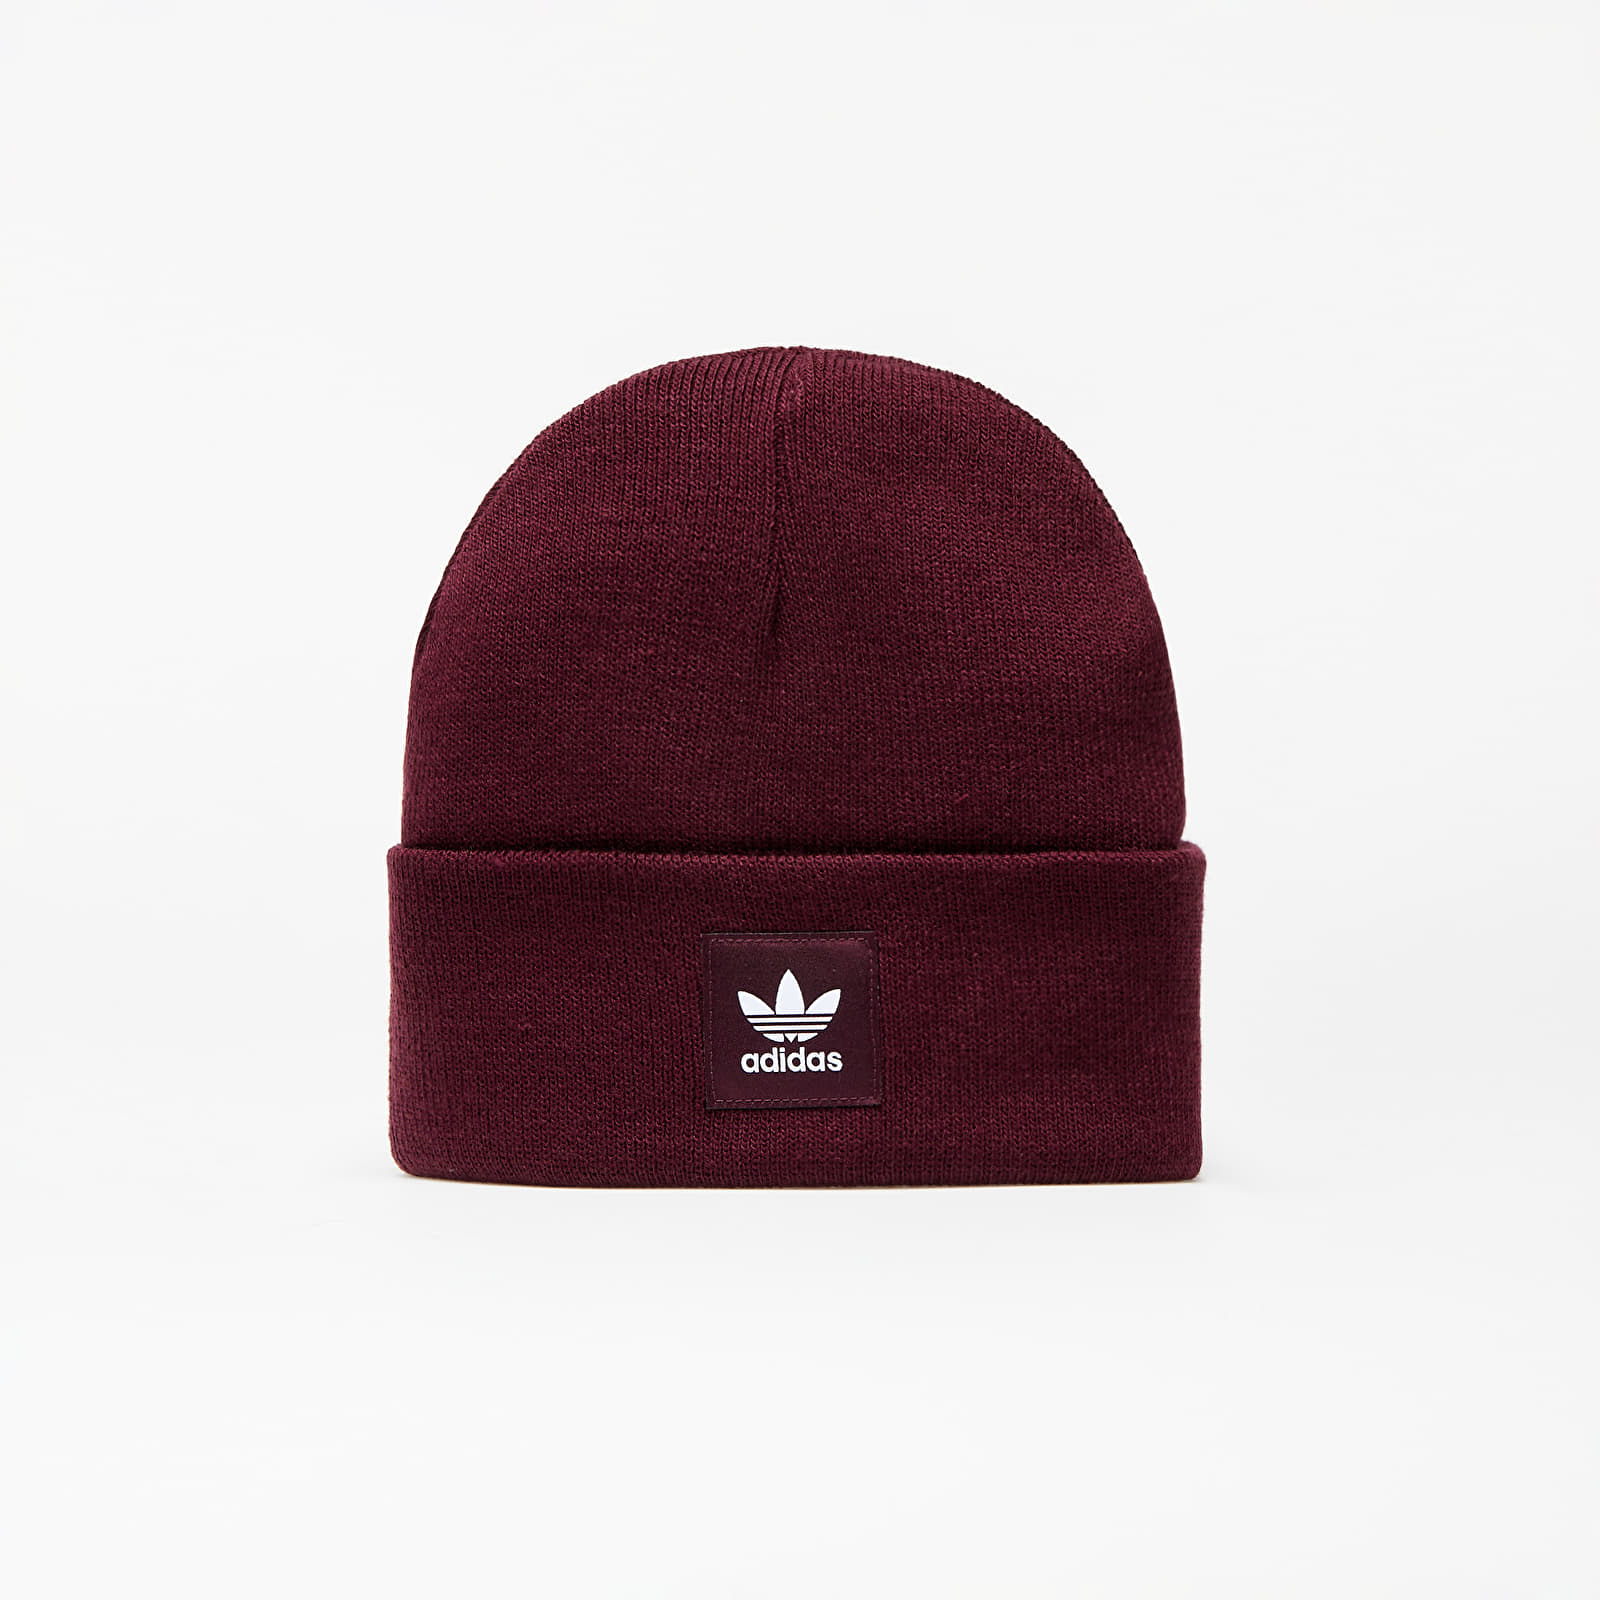 Hats adidas Adicolor Cuff Knit Maroon/ White